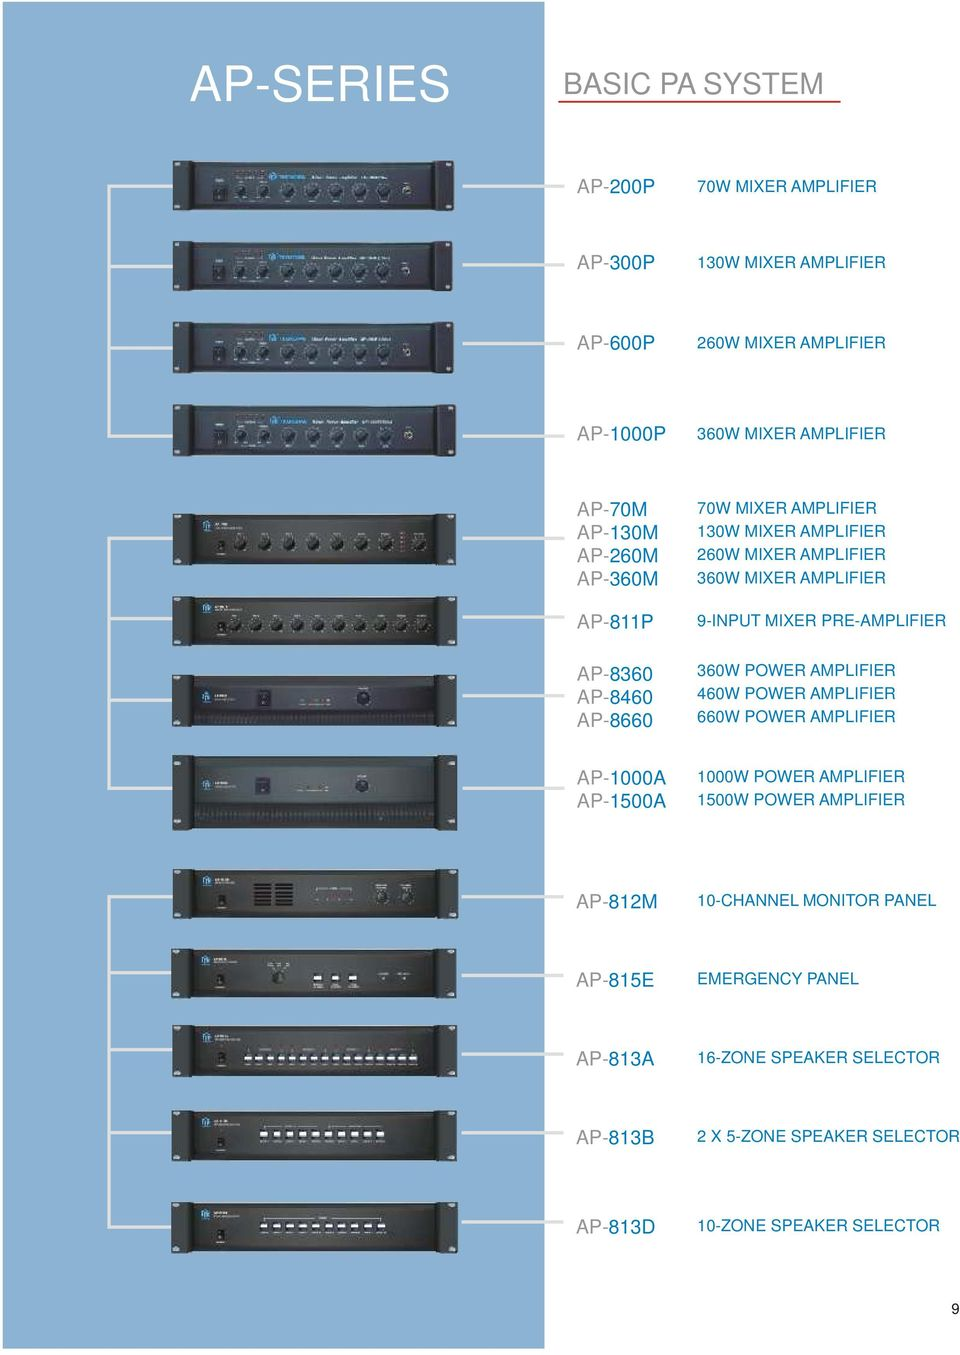 360W MIXER AMPLIFIER 9-INPUT MIXER PRE-AMPLIFIER AP-8360 AP-8460 360W 460W 660W AP-1000A AP-1500A 1000W 1500W 10-CHANNEL